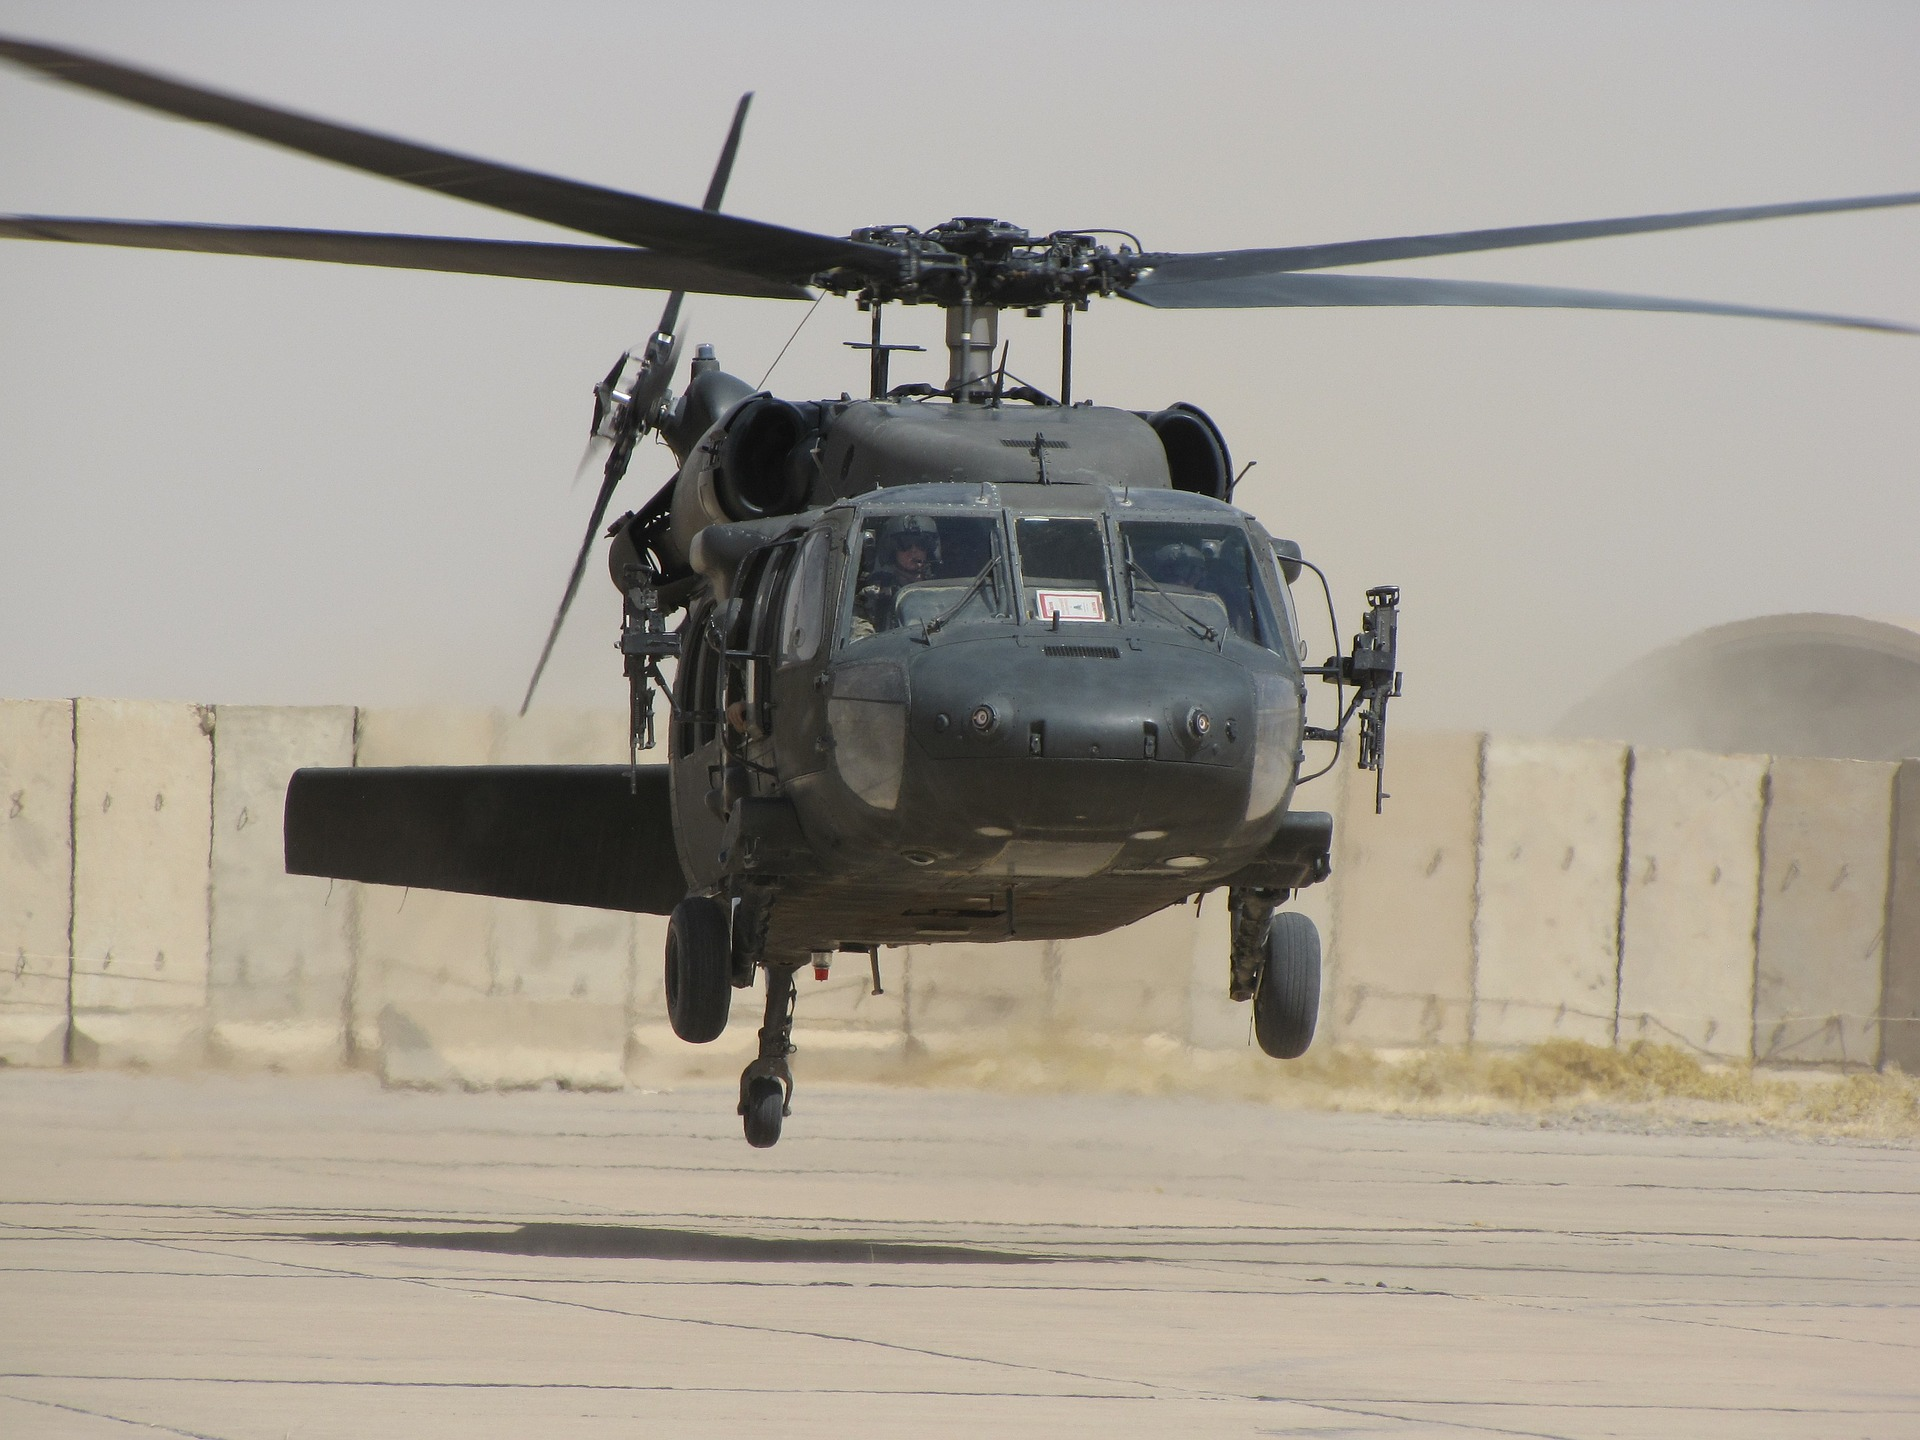 helicopter-773093_1920.jpg